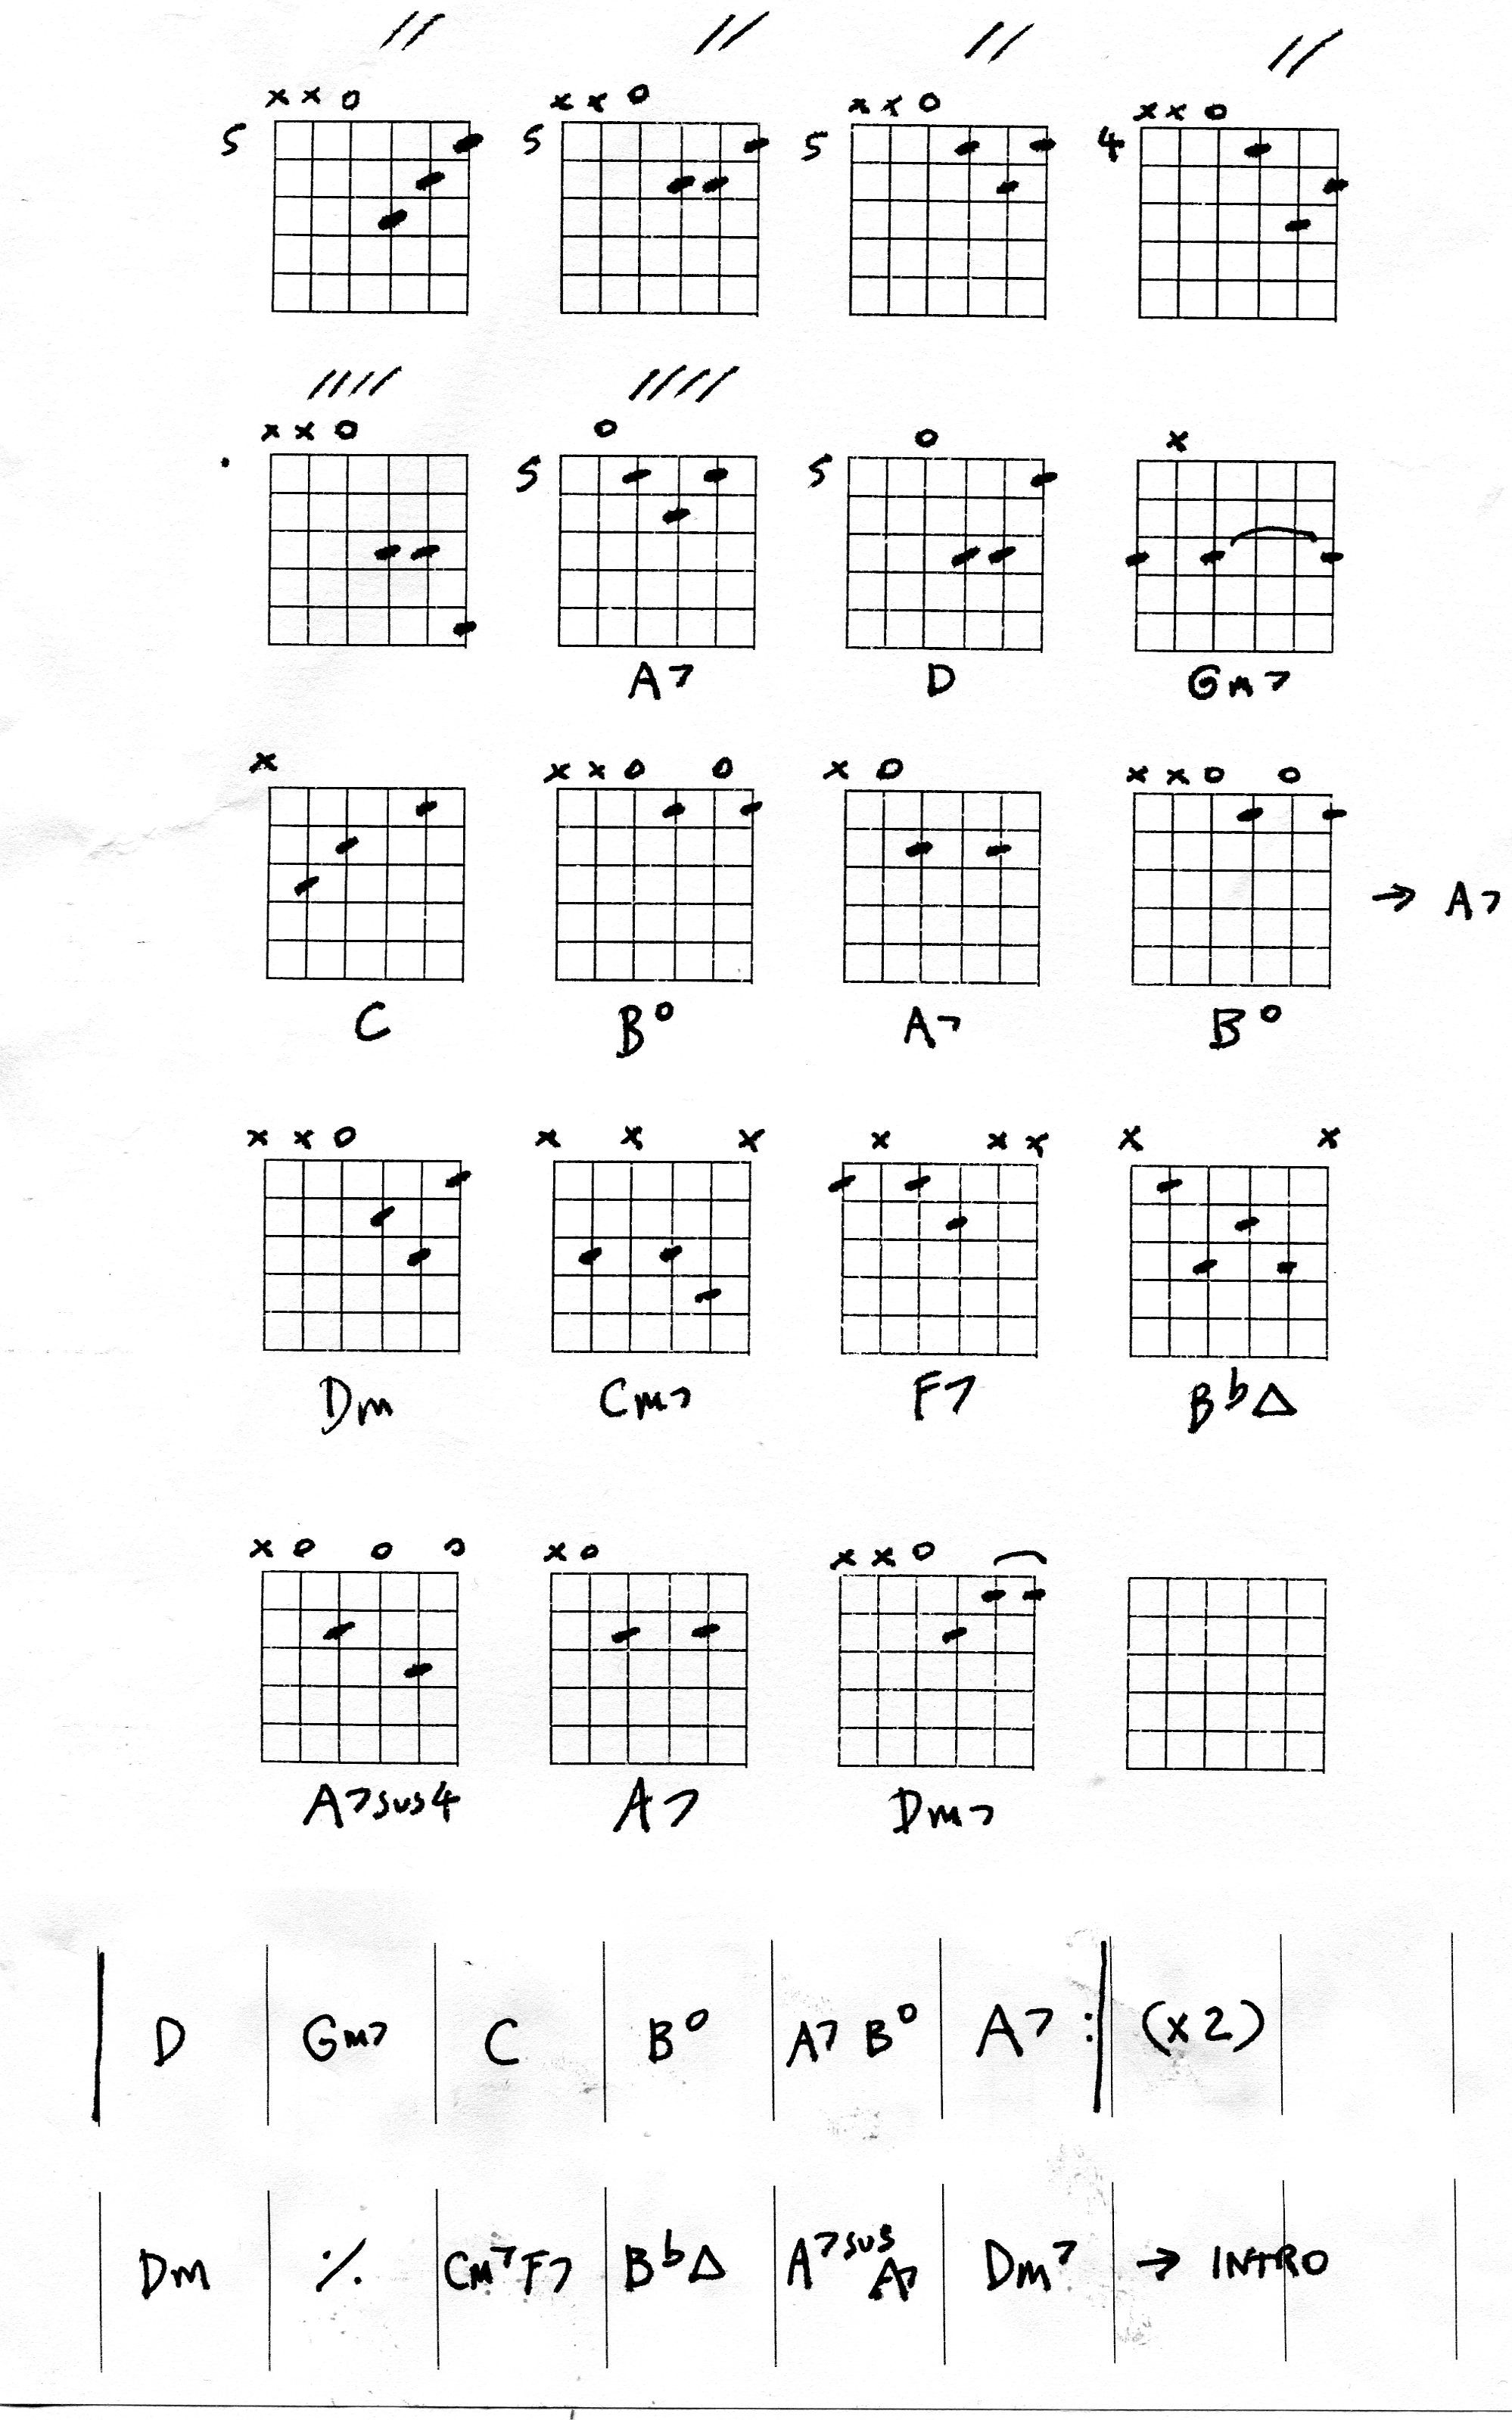 guitar chords study beatles guitar lessons guitar chords 12 string acoustic guitar guitar. Black Bedroom Furniture Sets. Home Design Ideas